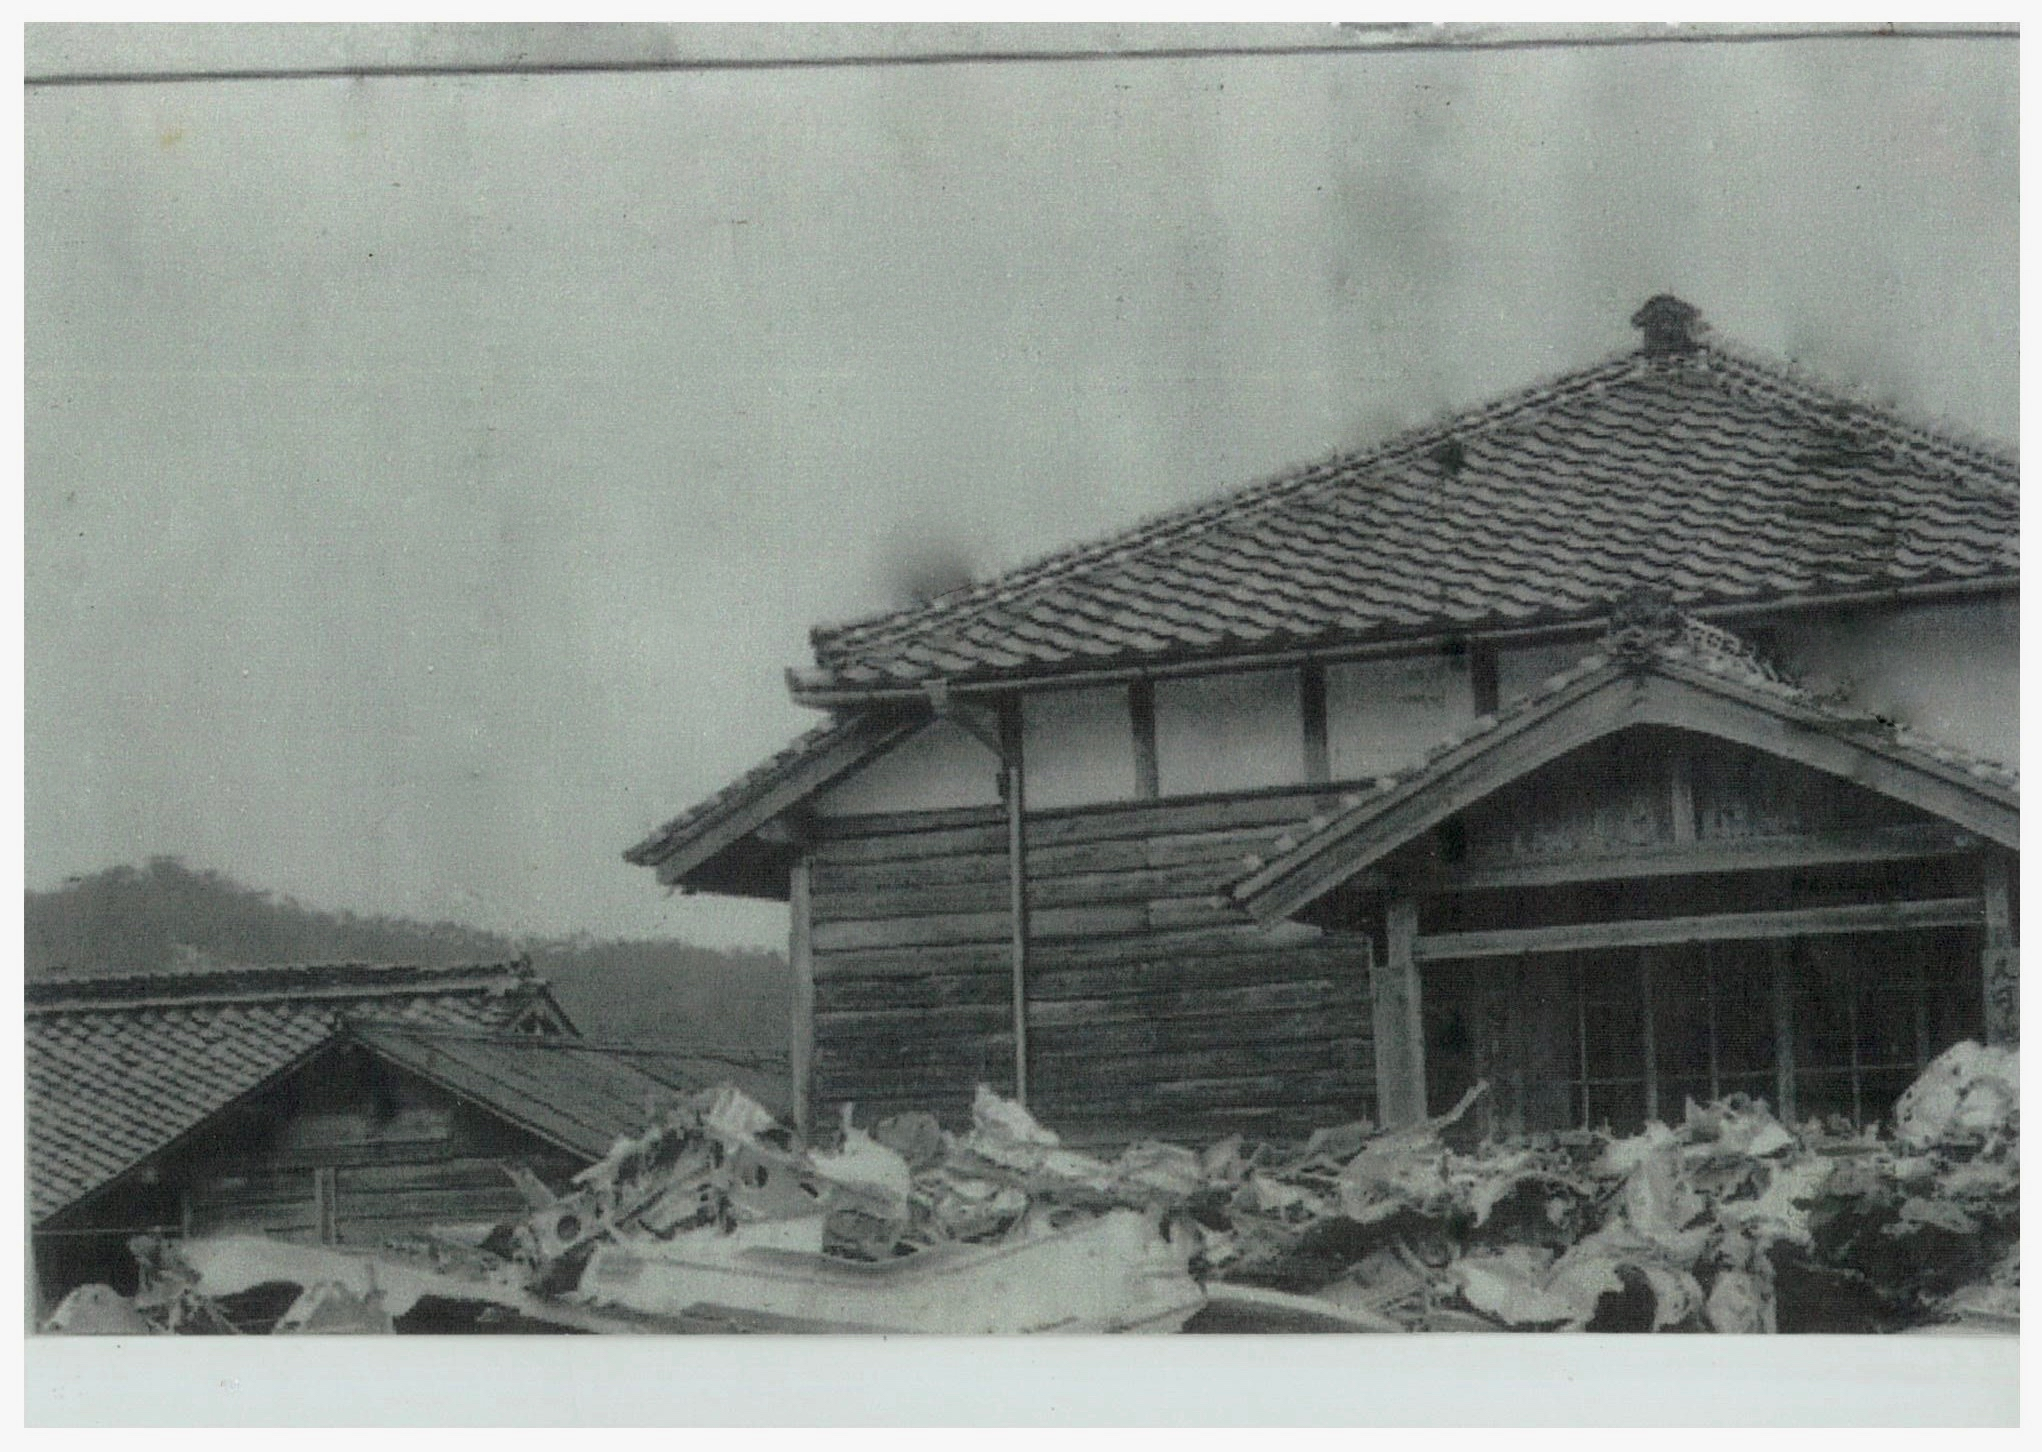 This traditional wooden structure is the Public Hall of the Ikachi Village, Kuga County, Yamaguchi Prefecture. As seen here, and as ordered by the GHQ, the wreckage of the  Lonesome Lady  was gathered and stacked into a large debris pile by villagers in front of the Hall along the national road, around 800m away from the crash site. (Photo courtesy of Mr. Yozo Kudo).